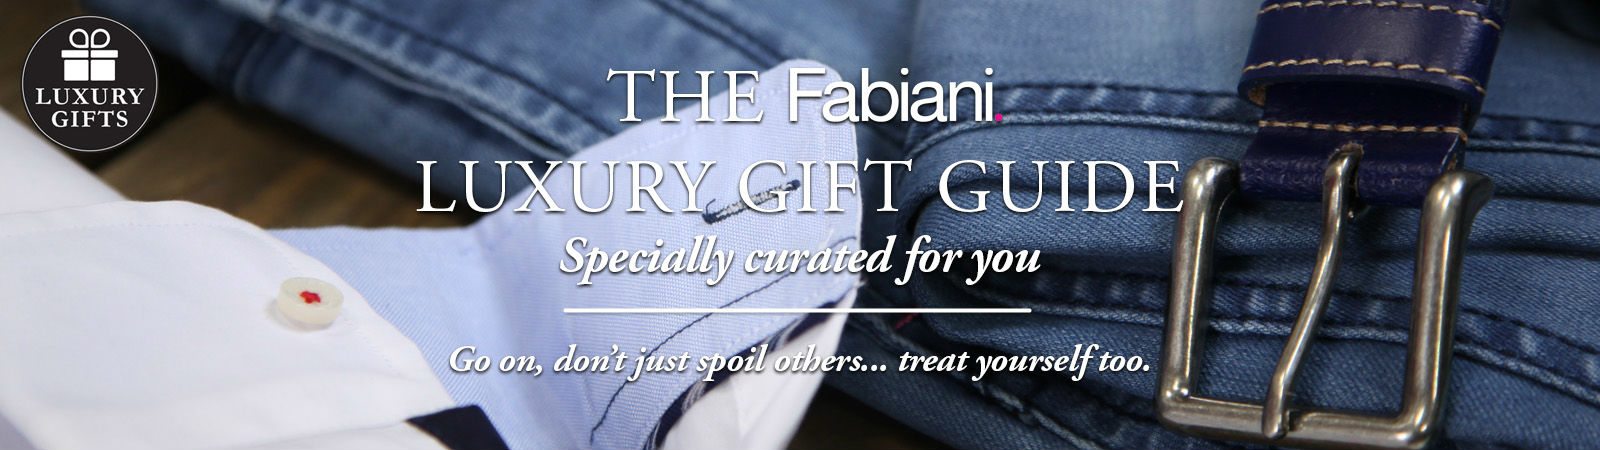 Luxury gift guide Fabiani